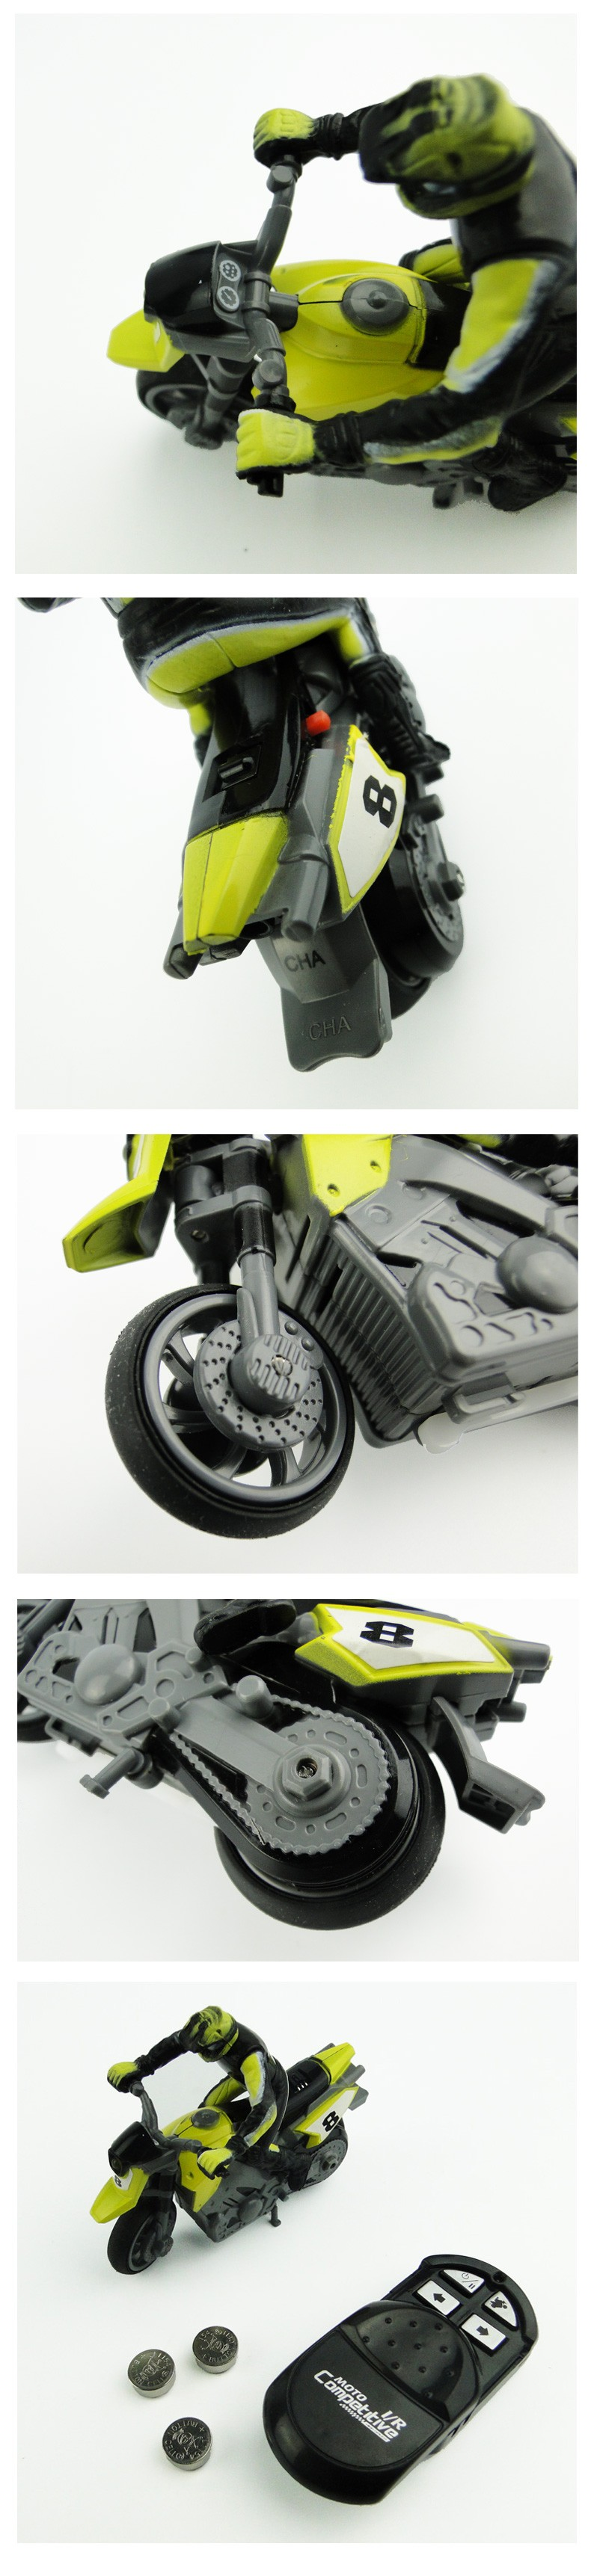 New Arrival Special Effects RC Motorcycle Radio Infrared Machine Remote Control Toys Competitive Play For Boys And Girls Gift